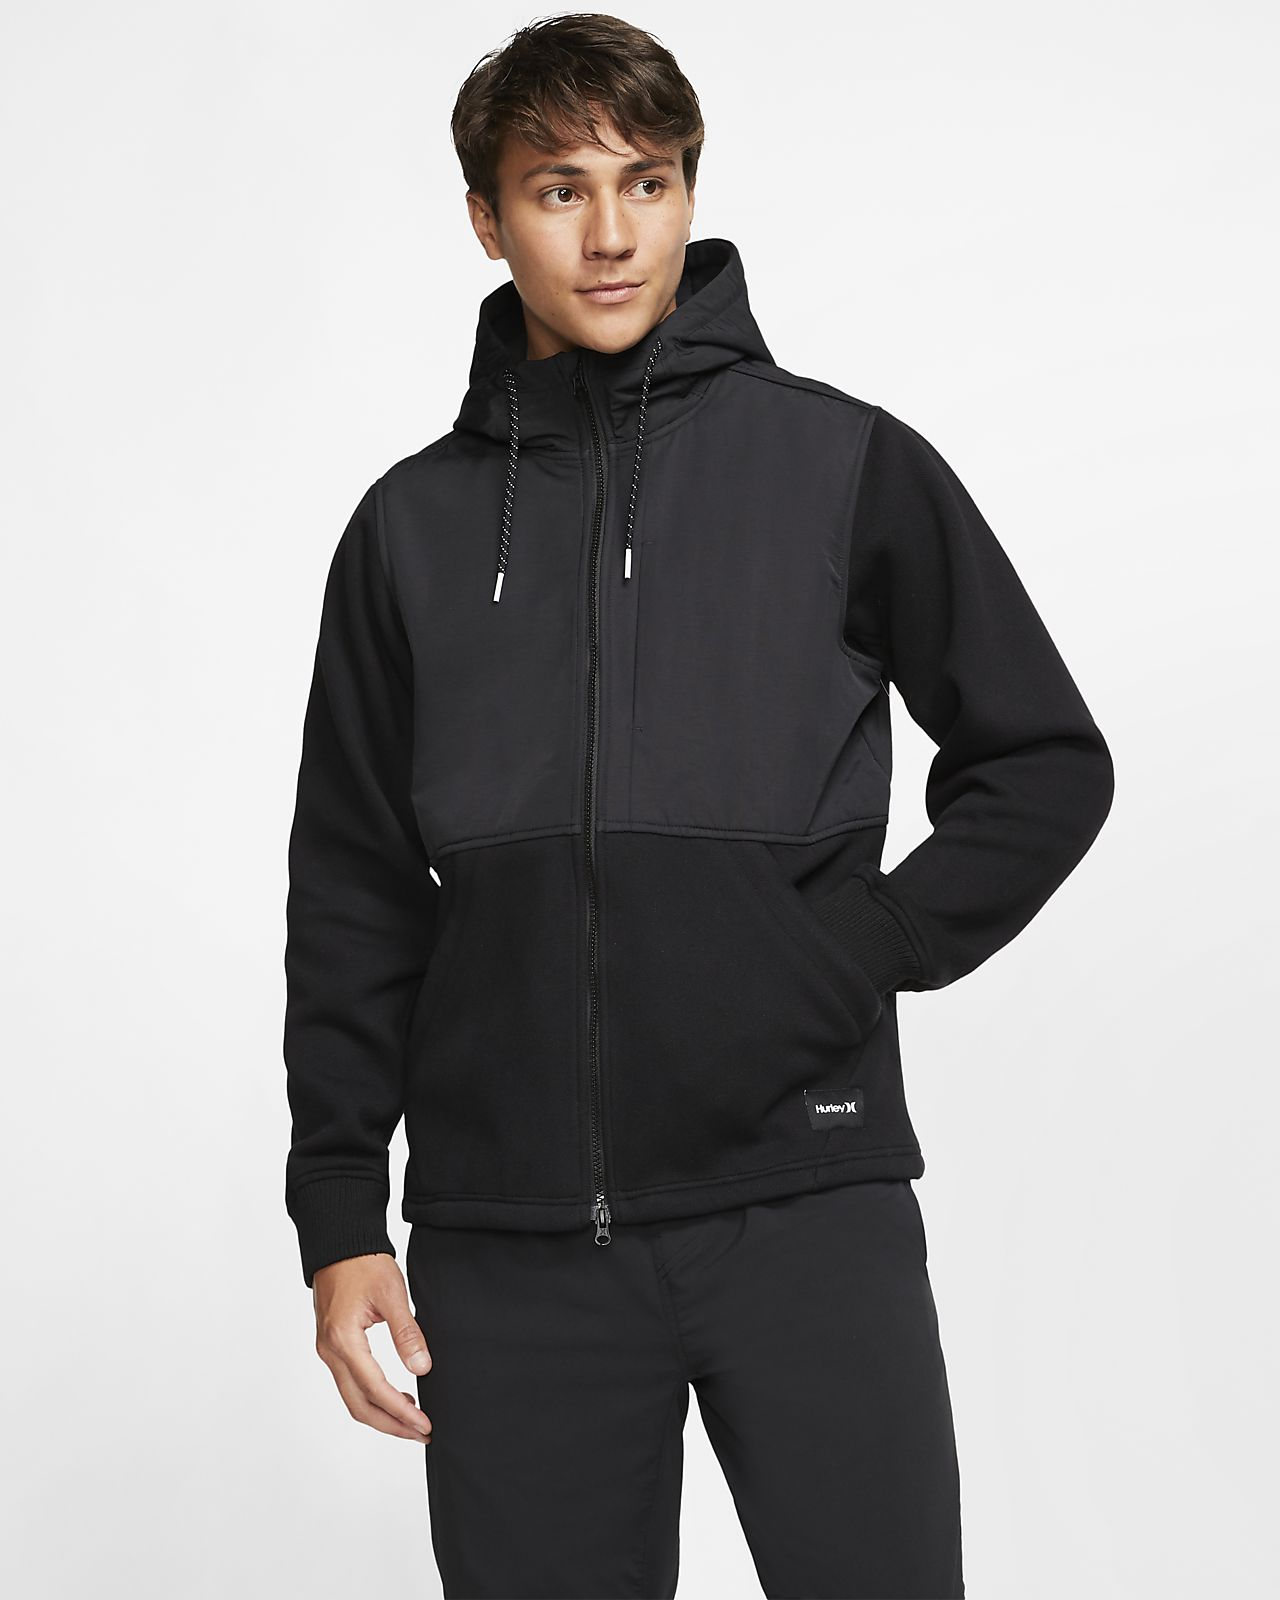 Hurley Therma Protect Men's Jacket